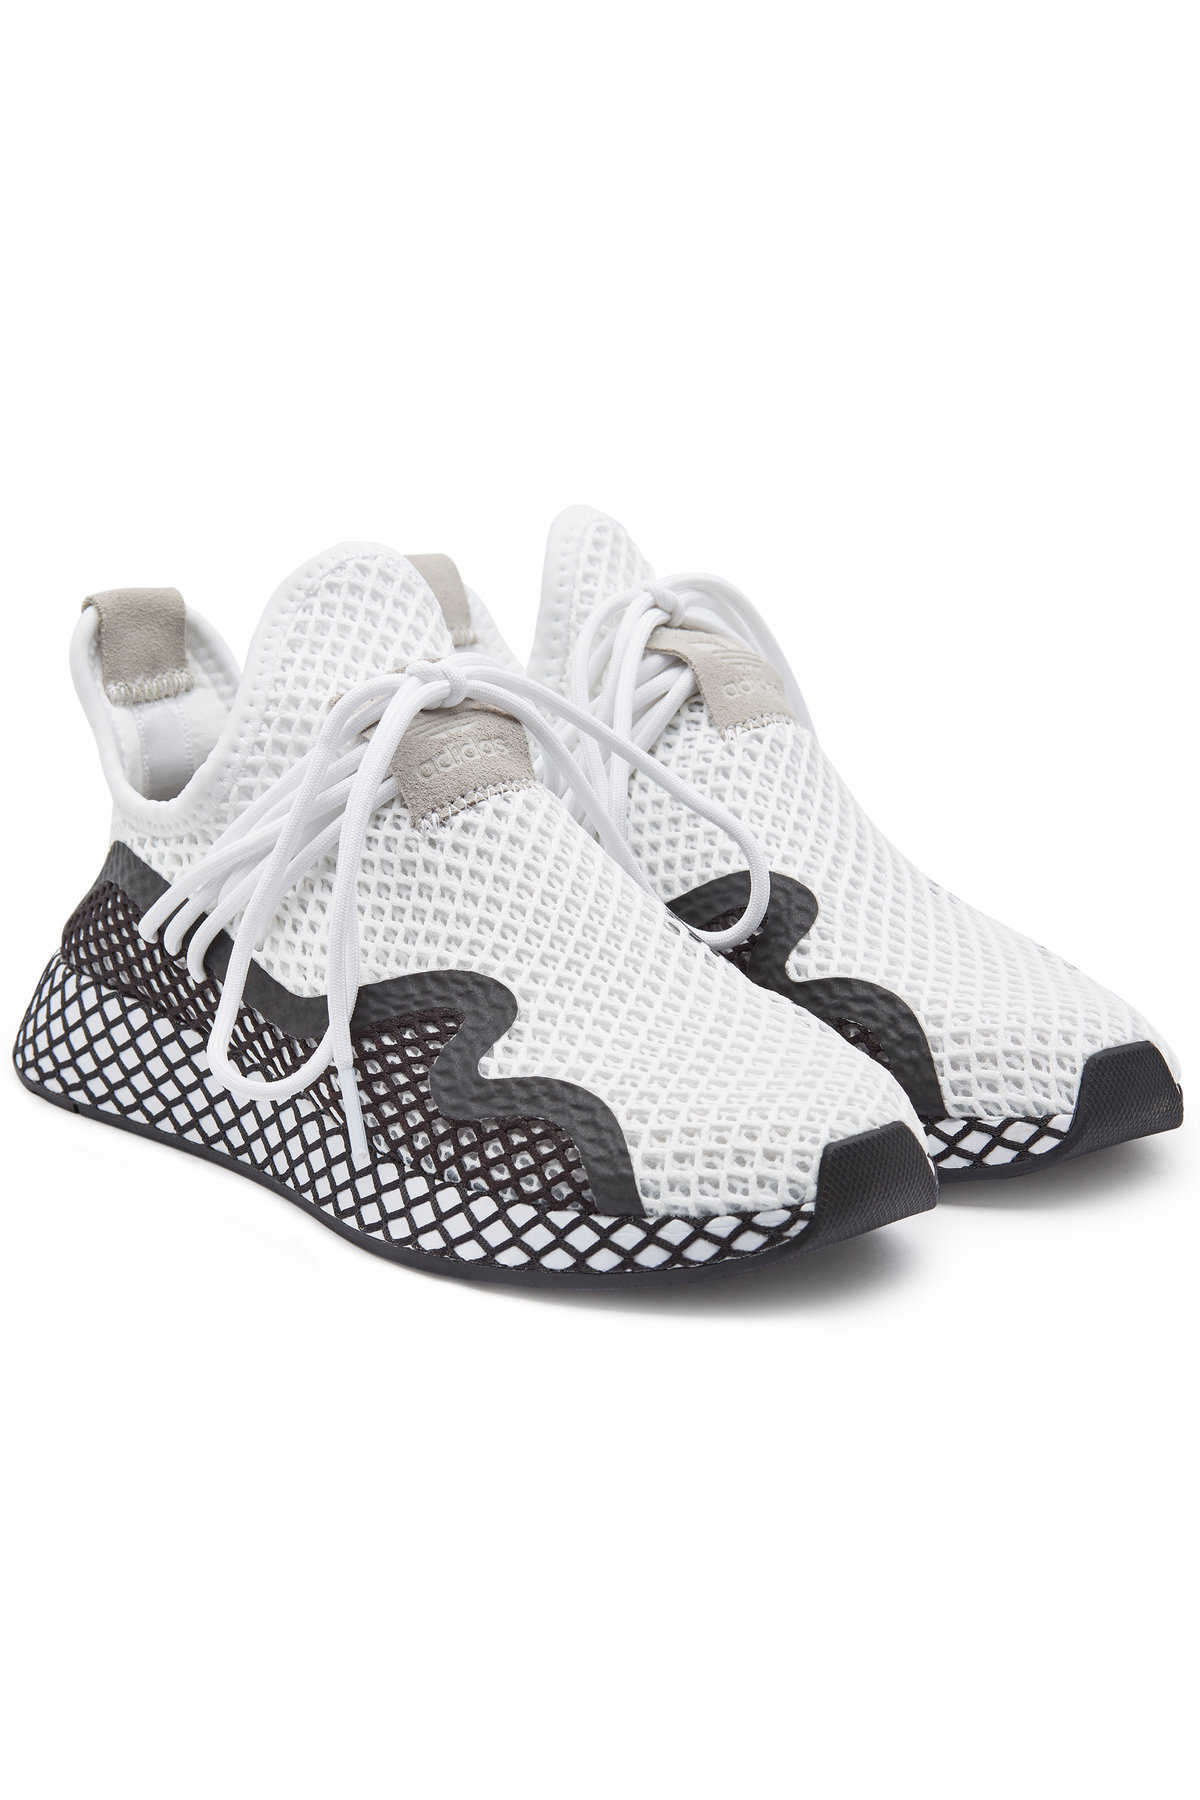 69fd112b499 Adidas Originals Deerupt S Sneakers with Mesh GOOFASH 297725